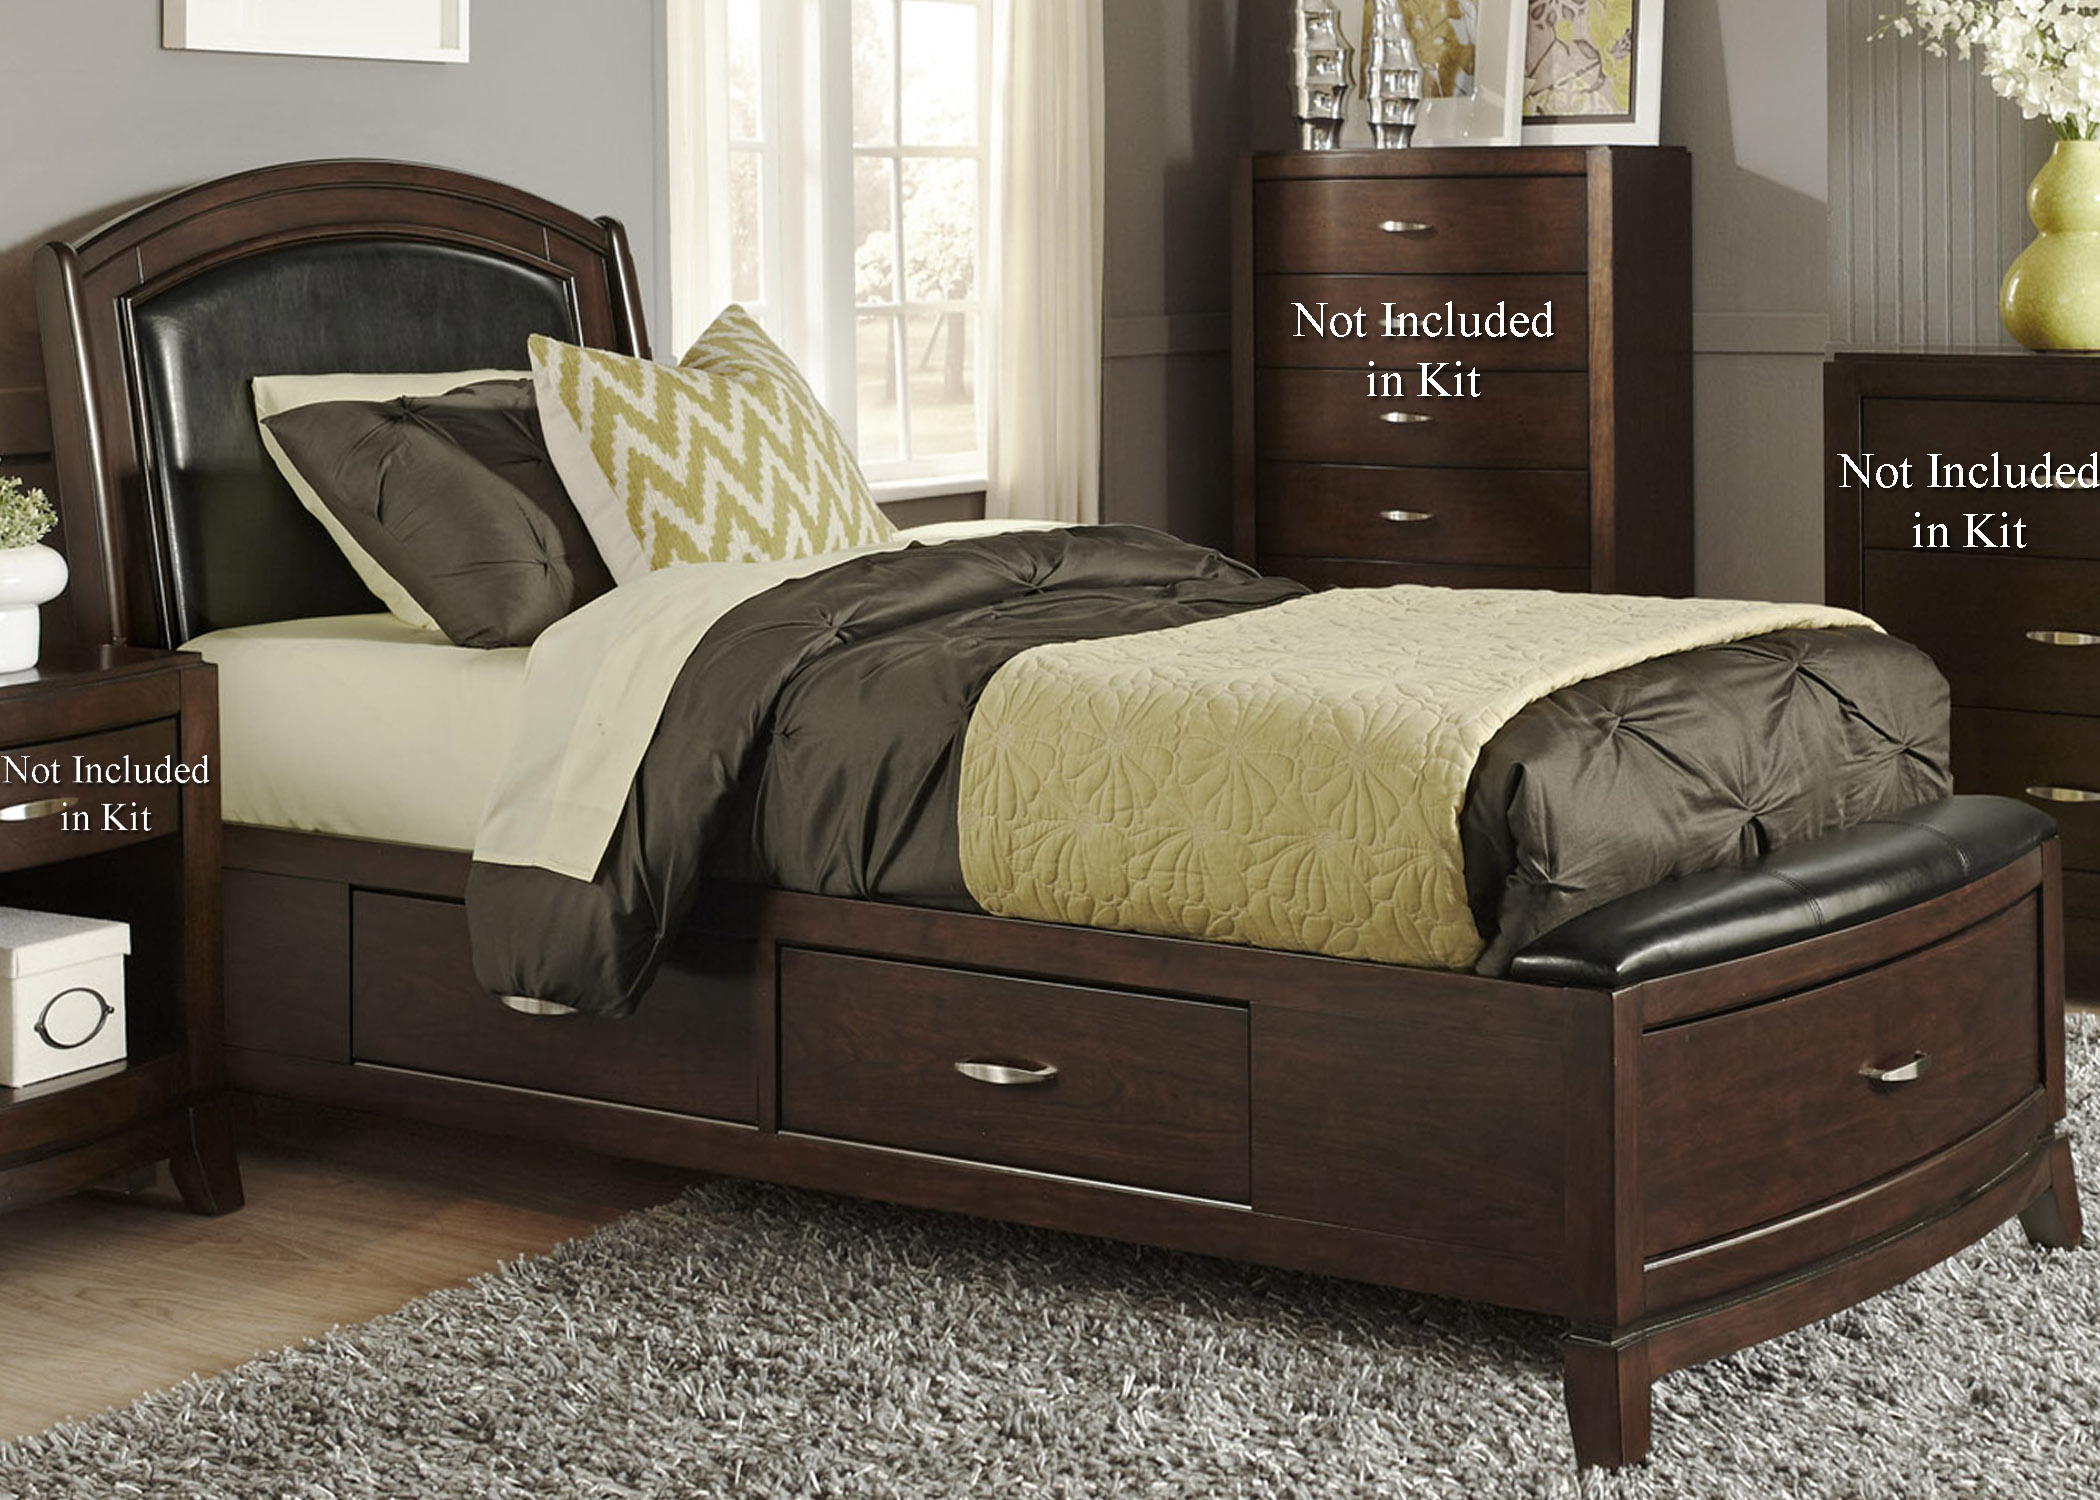 Liberty Furniture Avalon Twin One Sided Storage Bed  - Item Number: 505-YBR-T1S